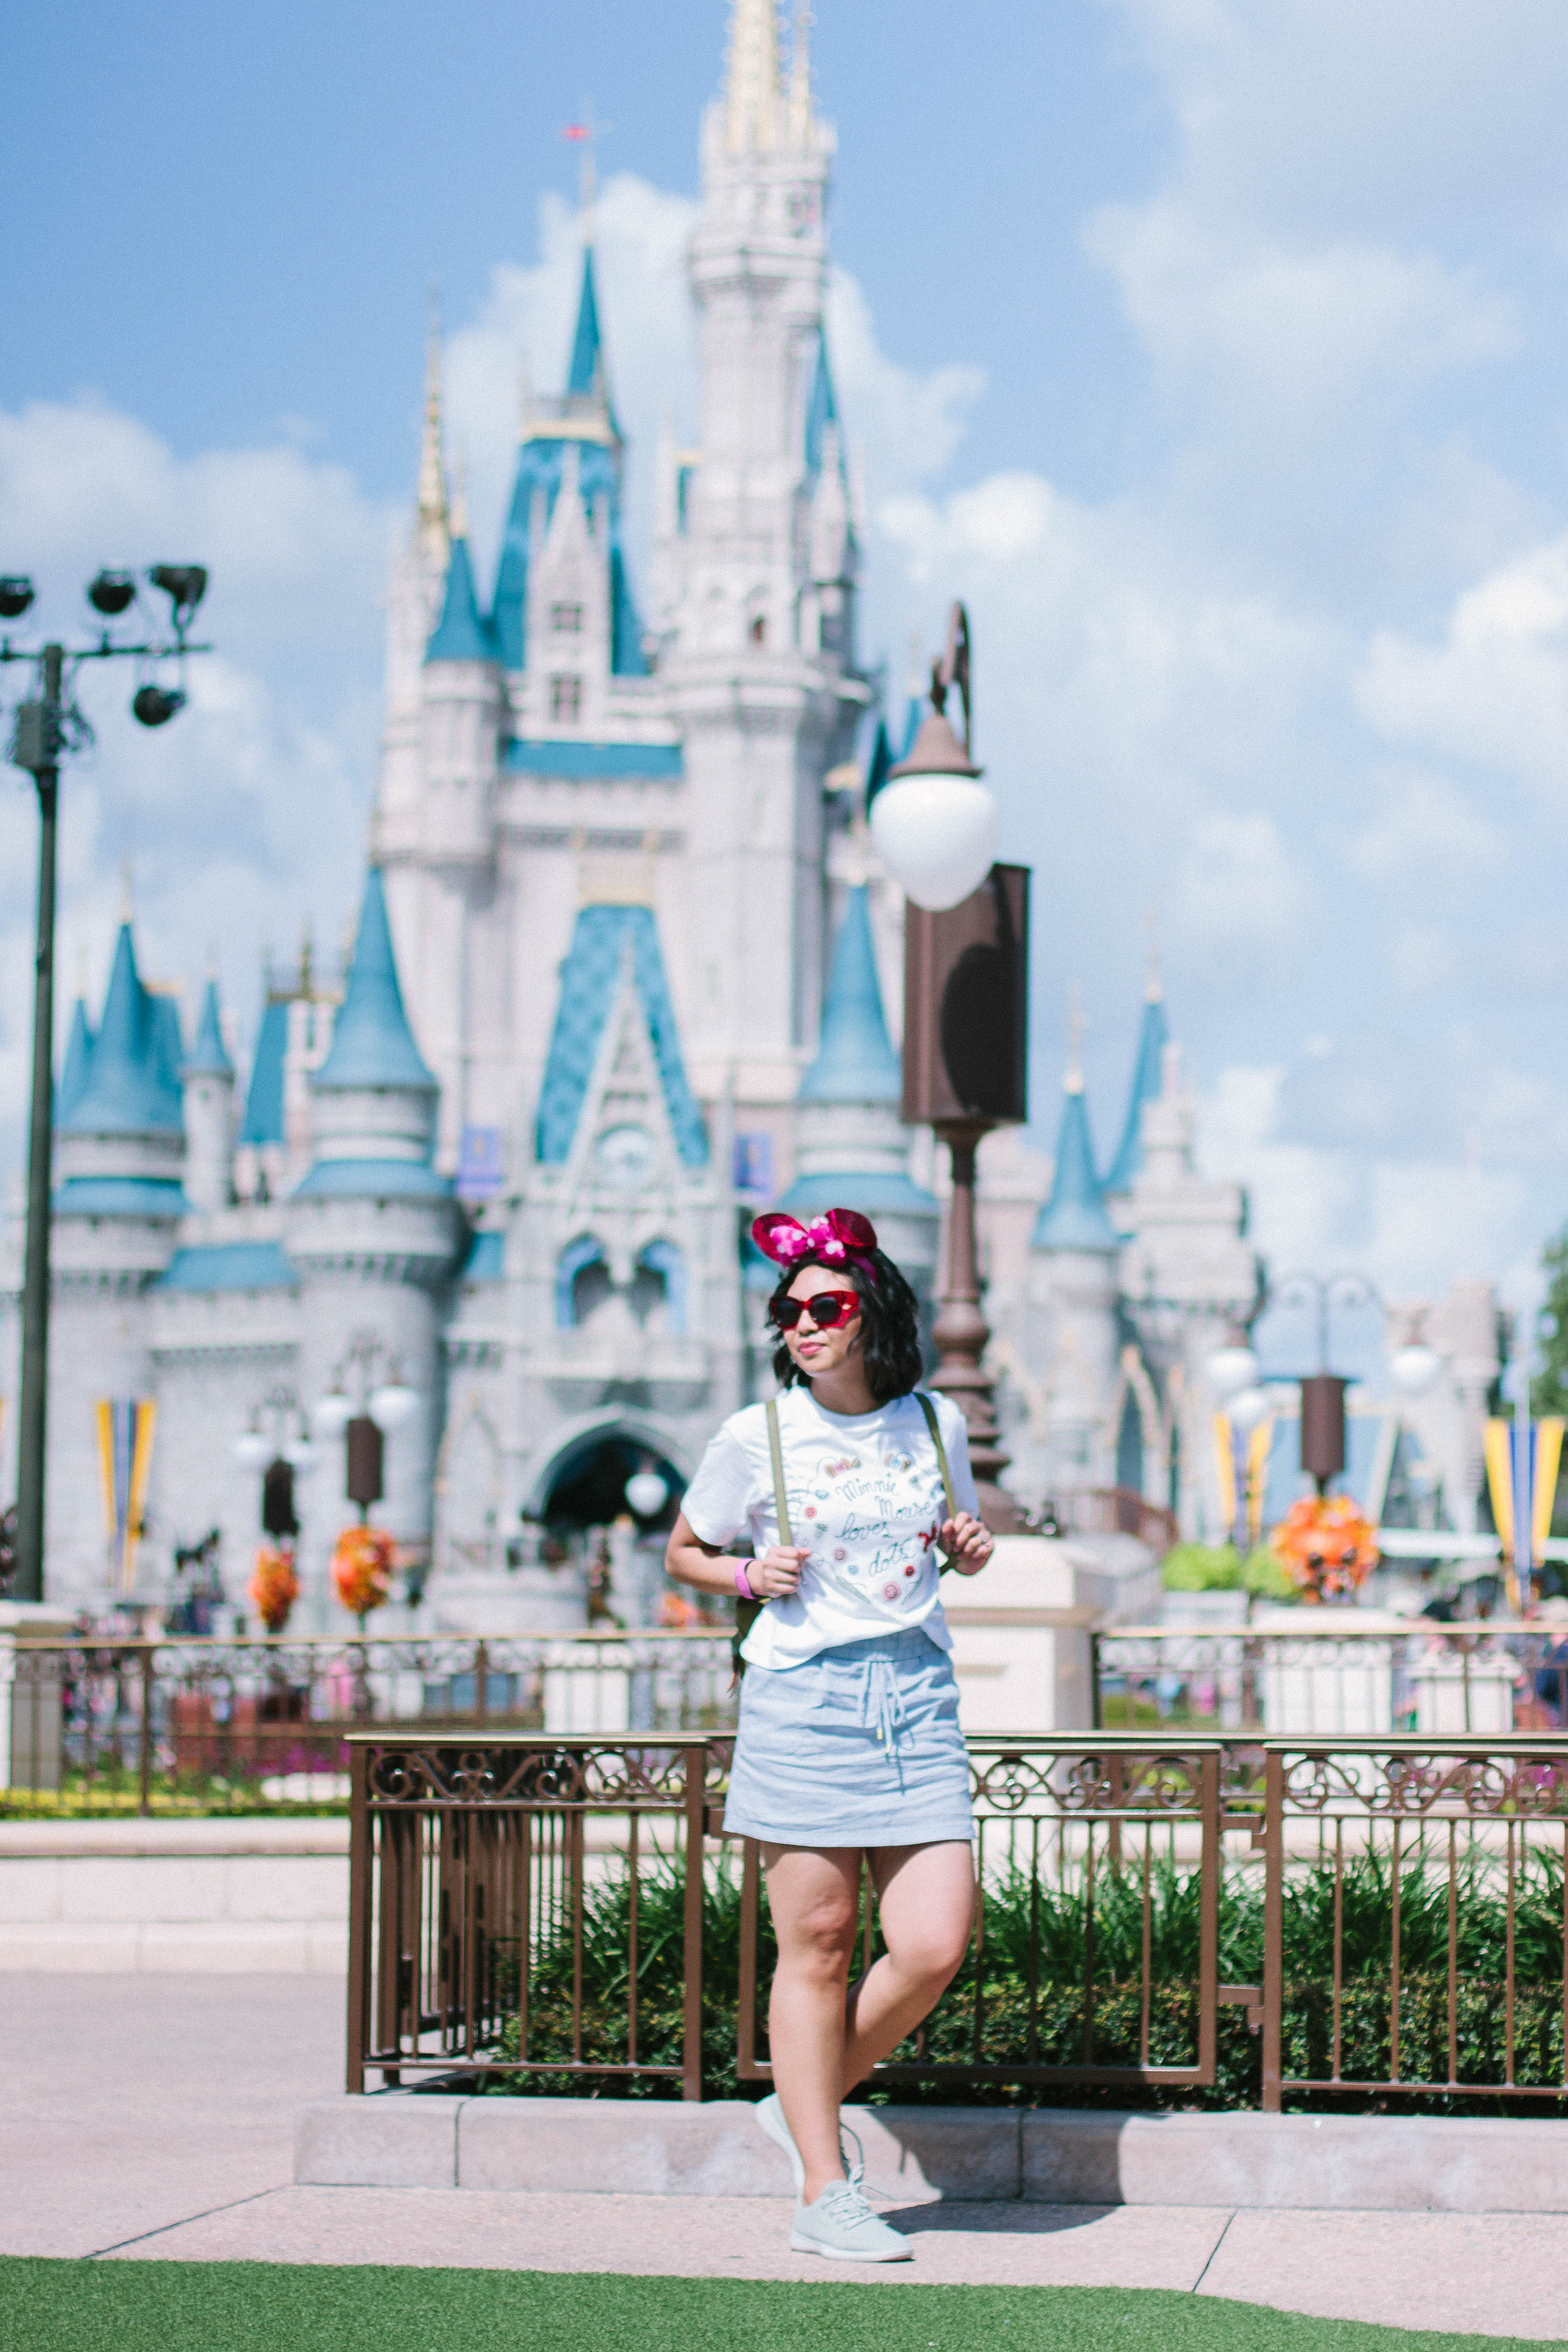 48cb97904ef How To Dress For Disney World Without Losing Style - RD s Obsessions